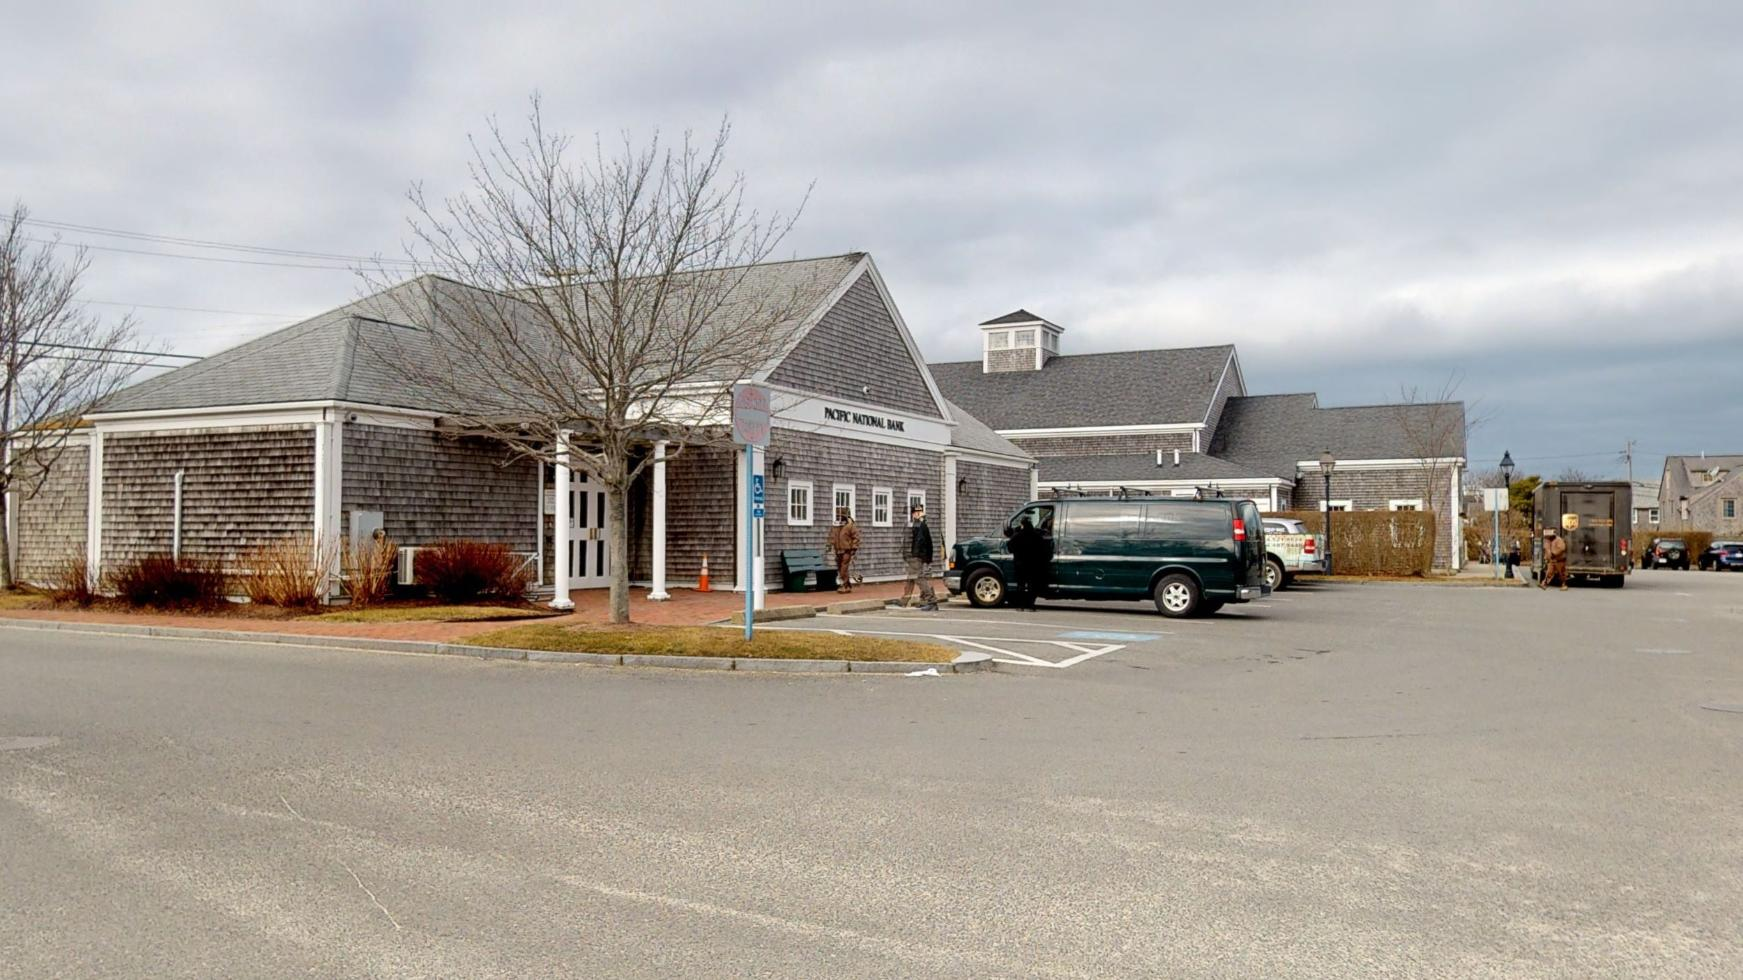 Bank of America financial center with drive-thru ATM and teller   15 Sparks Ave, Nantucket, MA 02554